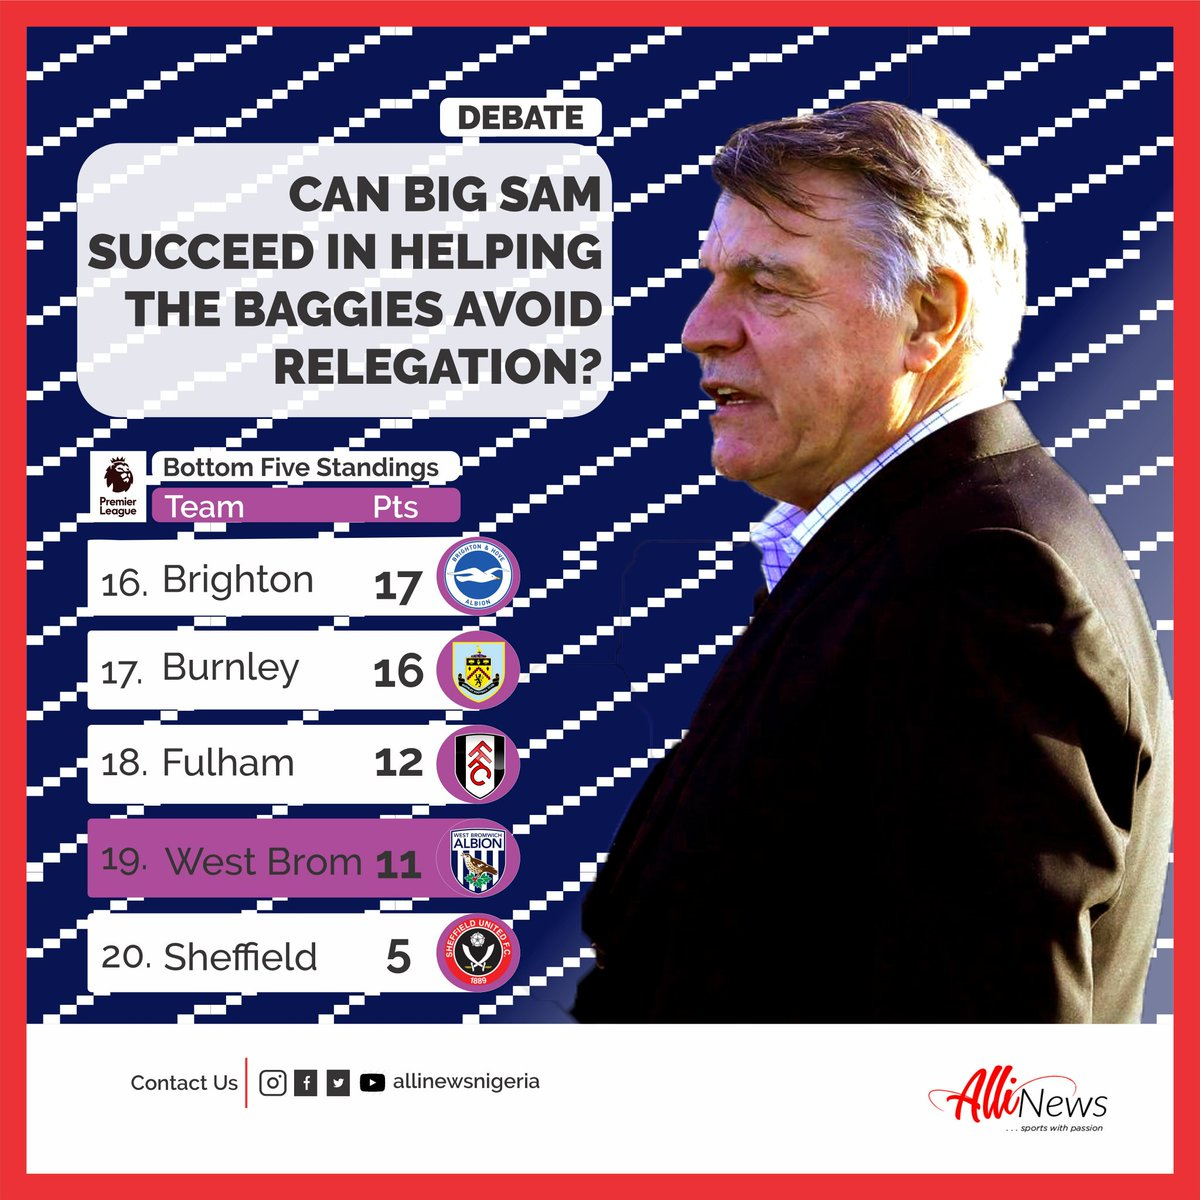 #samallardyce picked up his first 3️⃣ points with #westbrom against #wolves yesterday and right now the Baggies are 5⃣ points from safety.  They currently sit 19th on the log - one point behind #Fulham who have a game in hand and six bottom placed #sheffieldunited. #premierleague